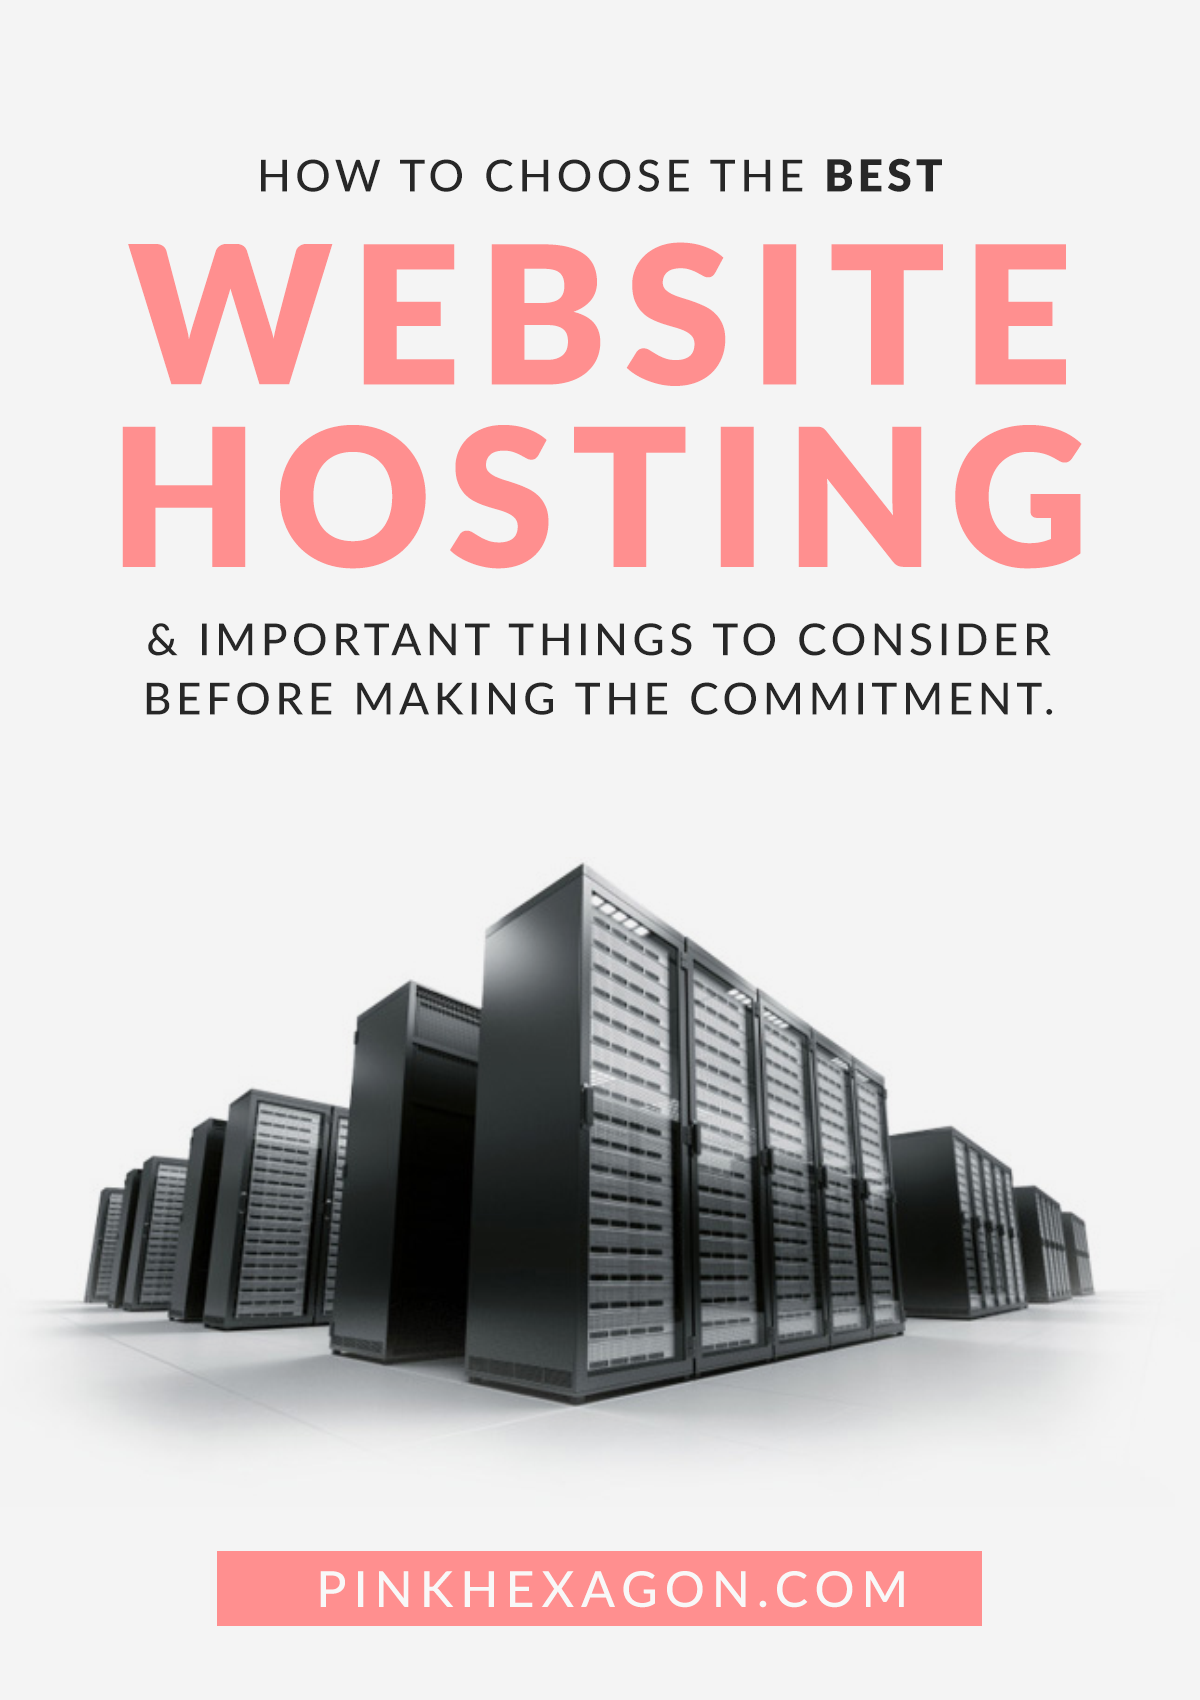 How to choose the best website hosting